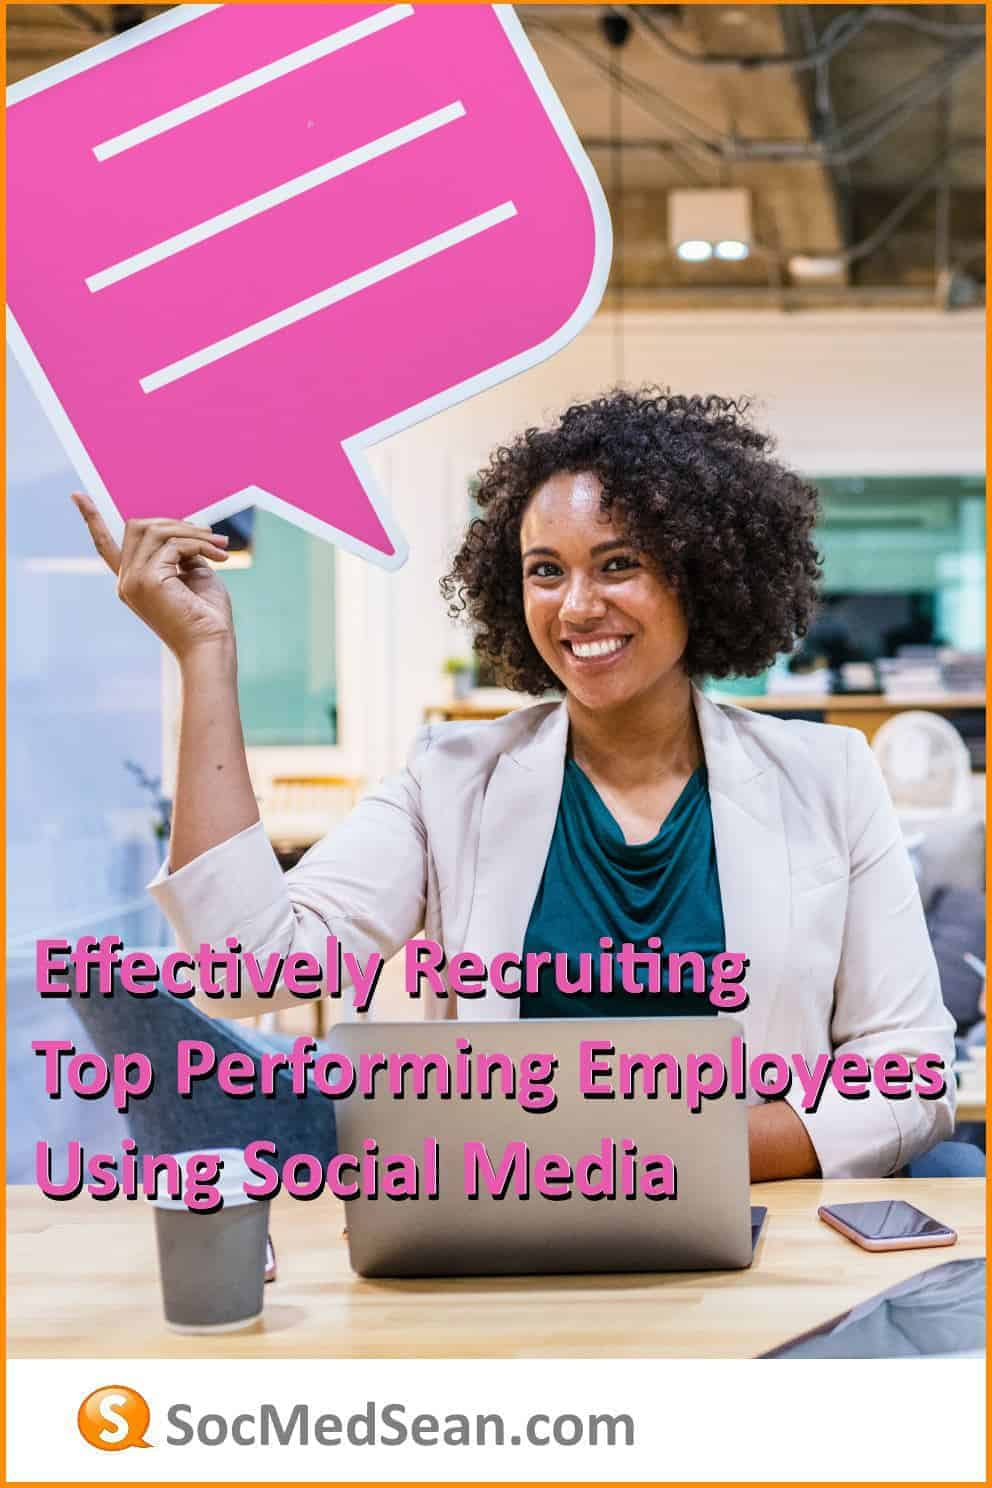 Effectively recruiting new employees using social media campaigns